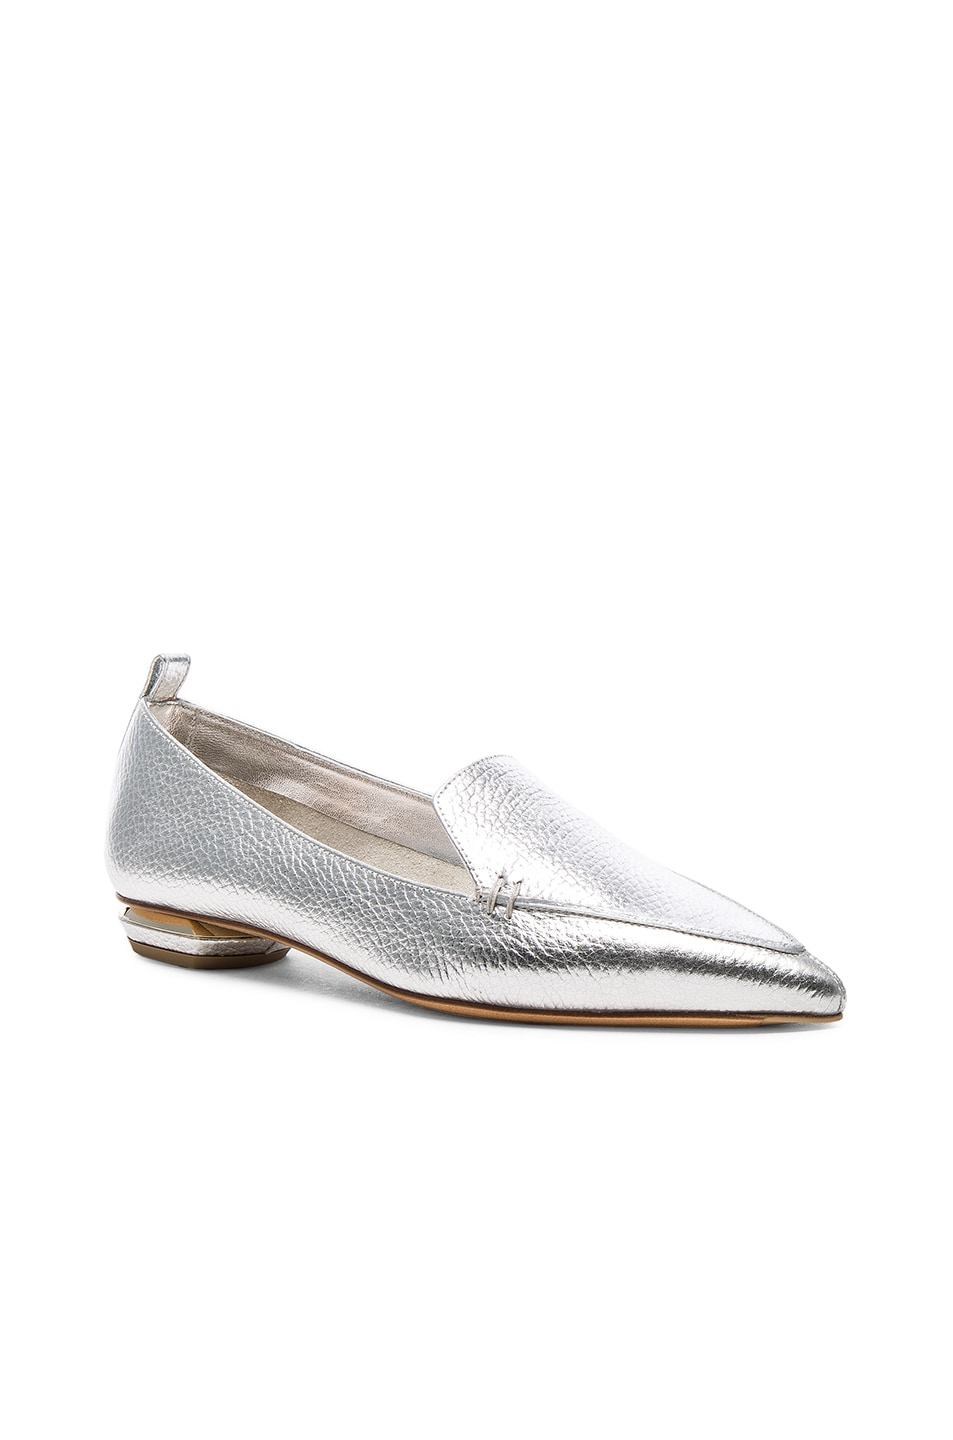 Image 2 of Nicholas Kirkwood Leather Beya Loafers in Silver